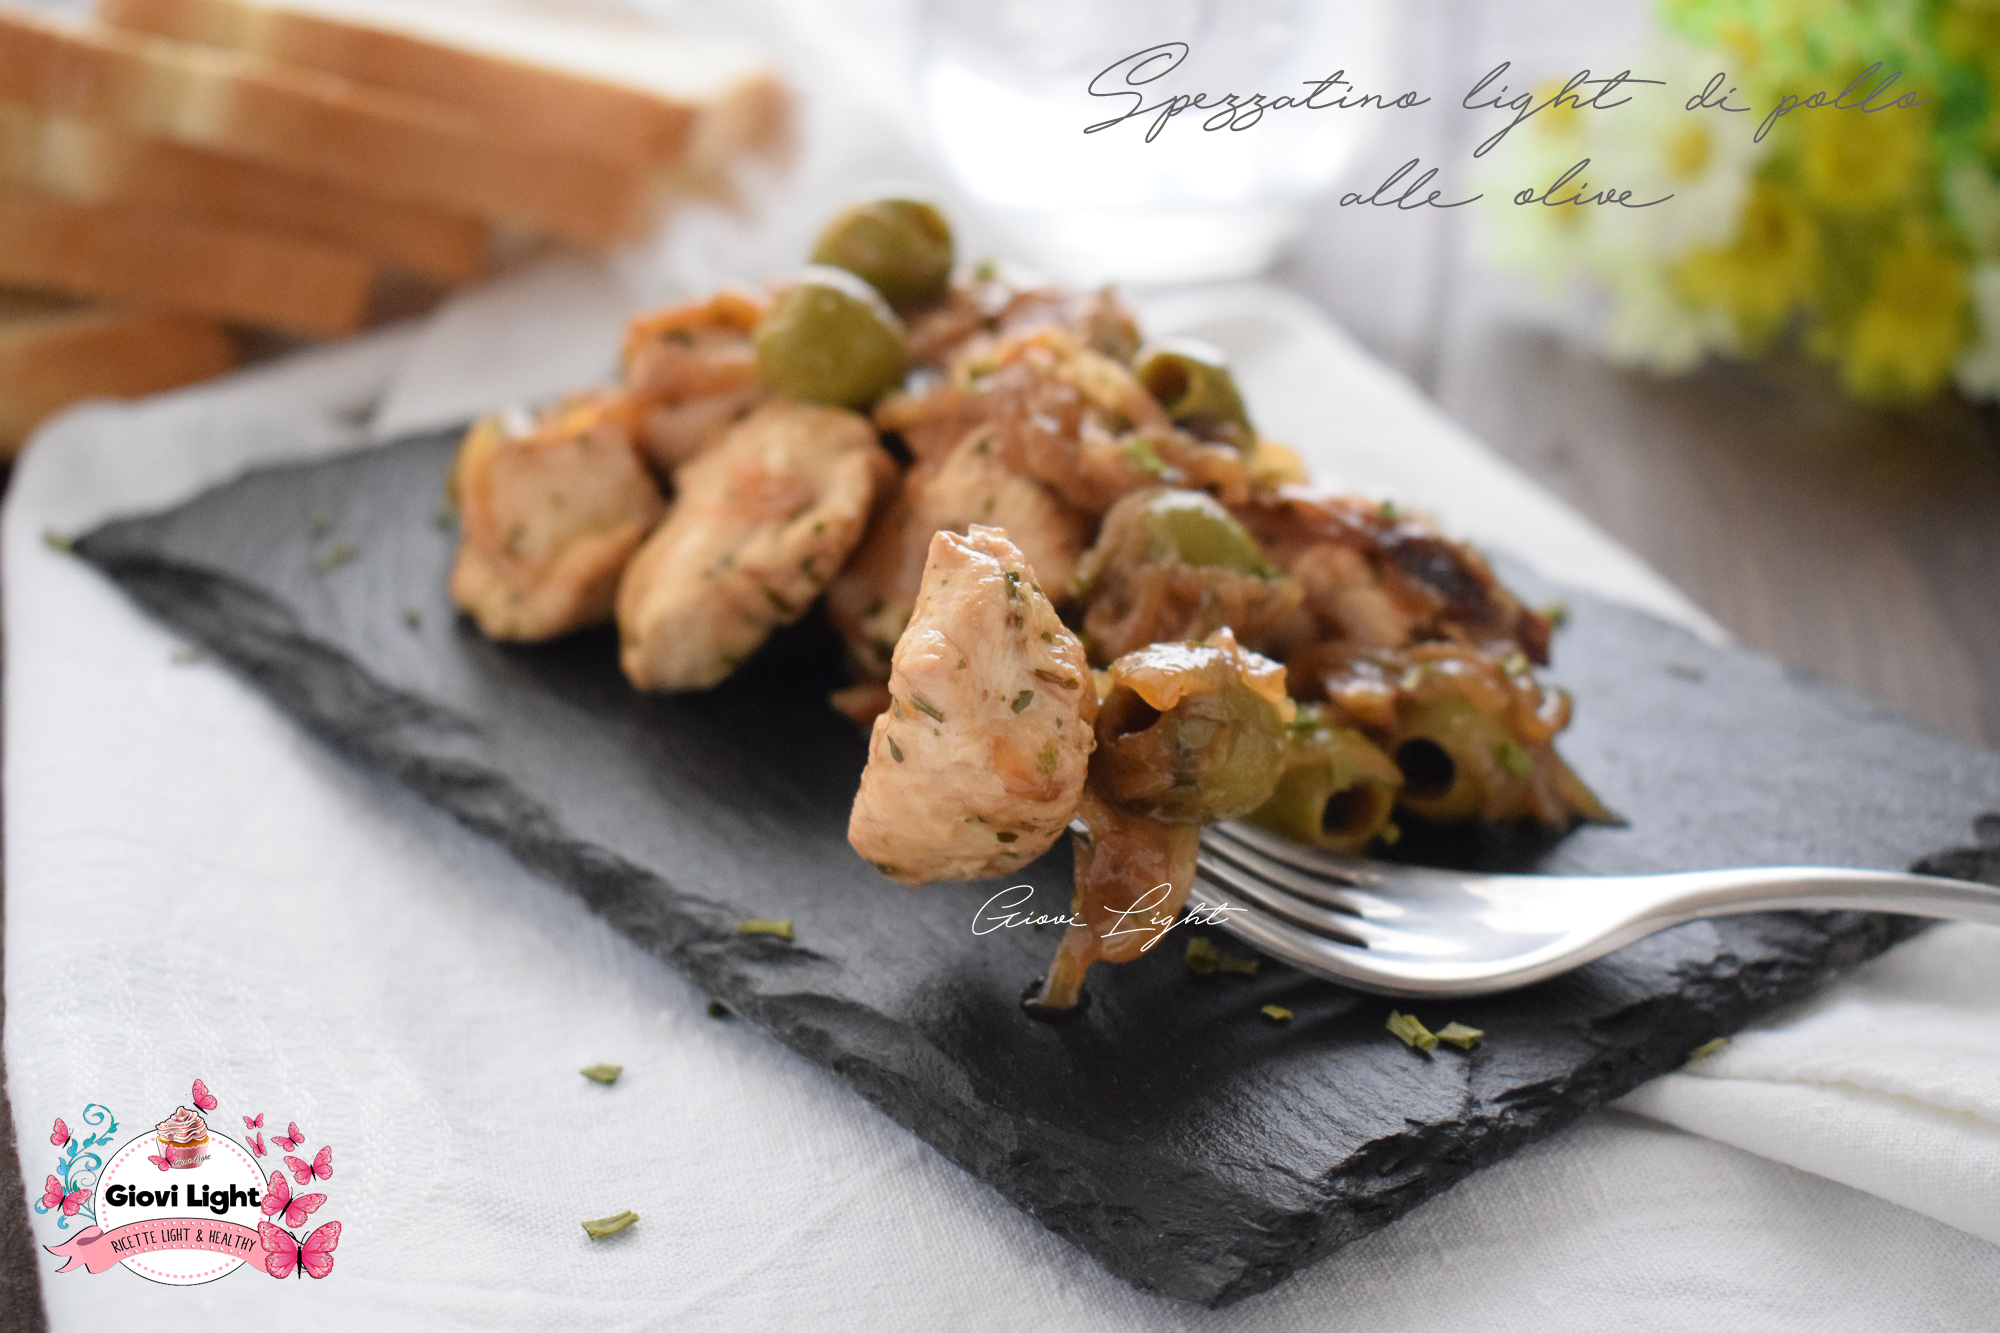 Spezzatino light di pollo alle olive